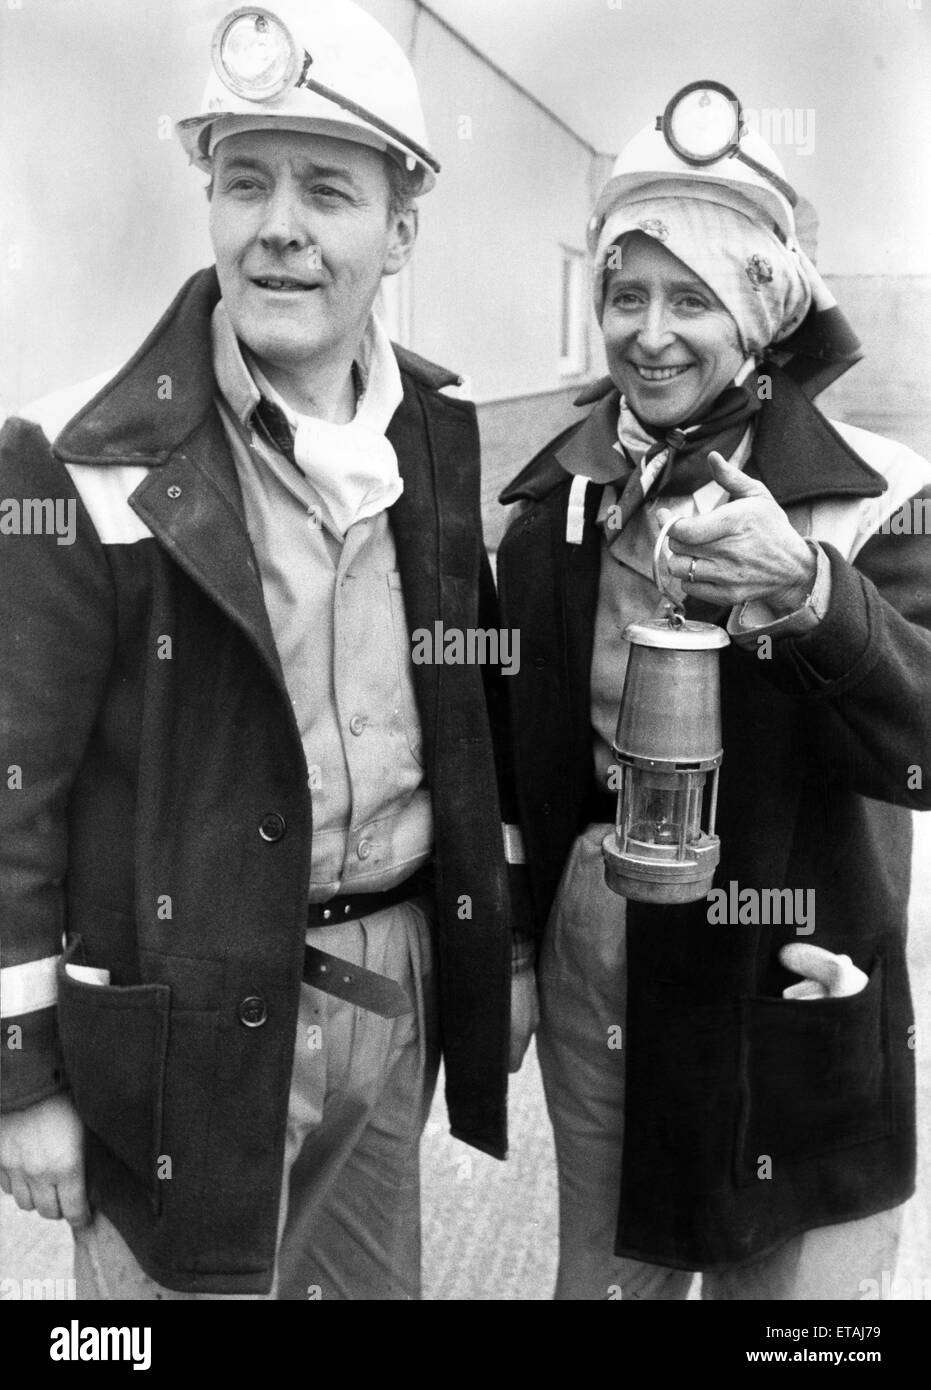 Tony Benn, was a British Labour Party politician who was a Member of Parliament (MP) for 50 years, died on 14 March - Stock Image